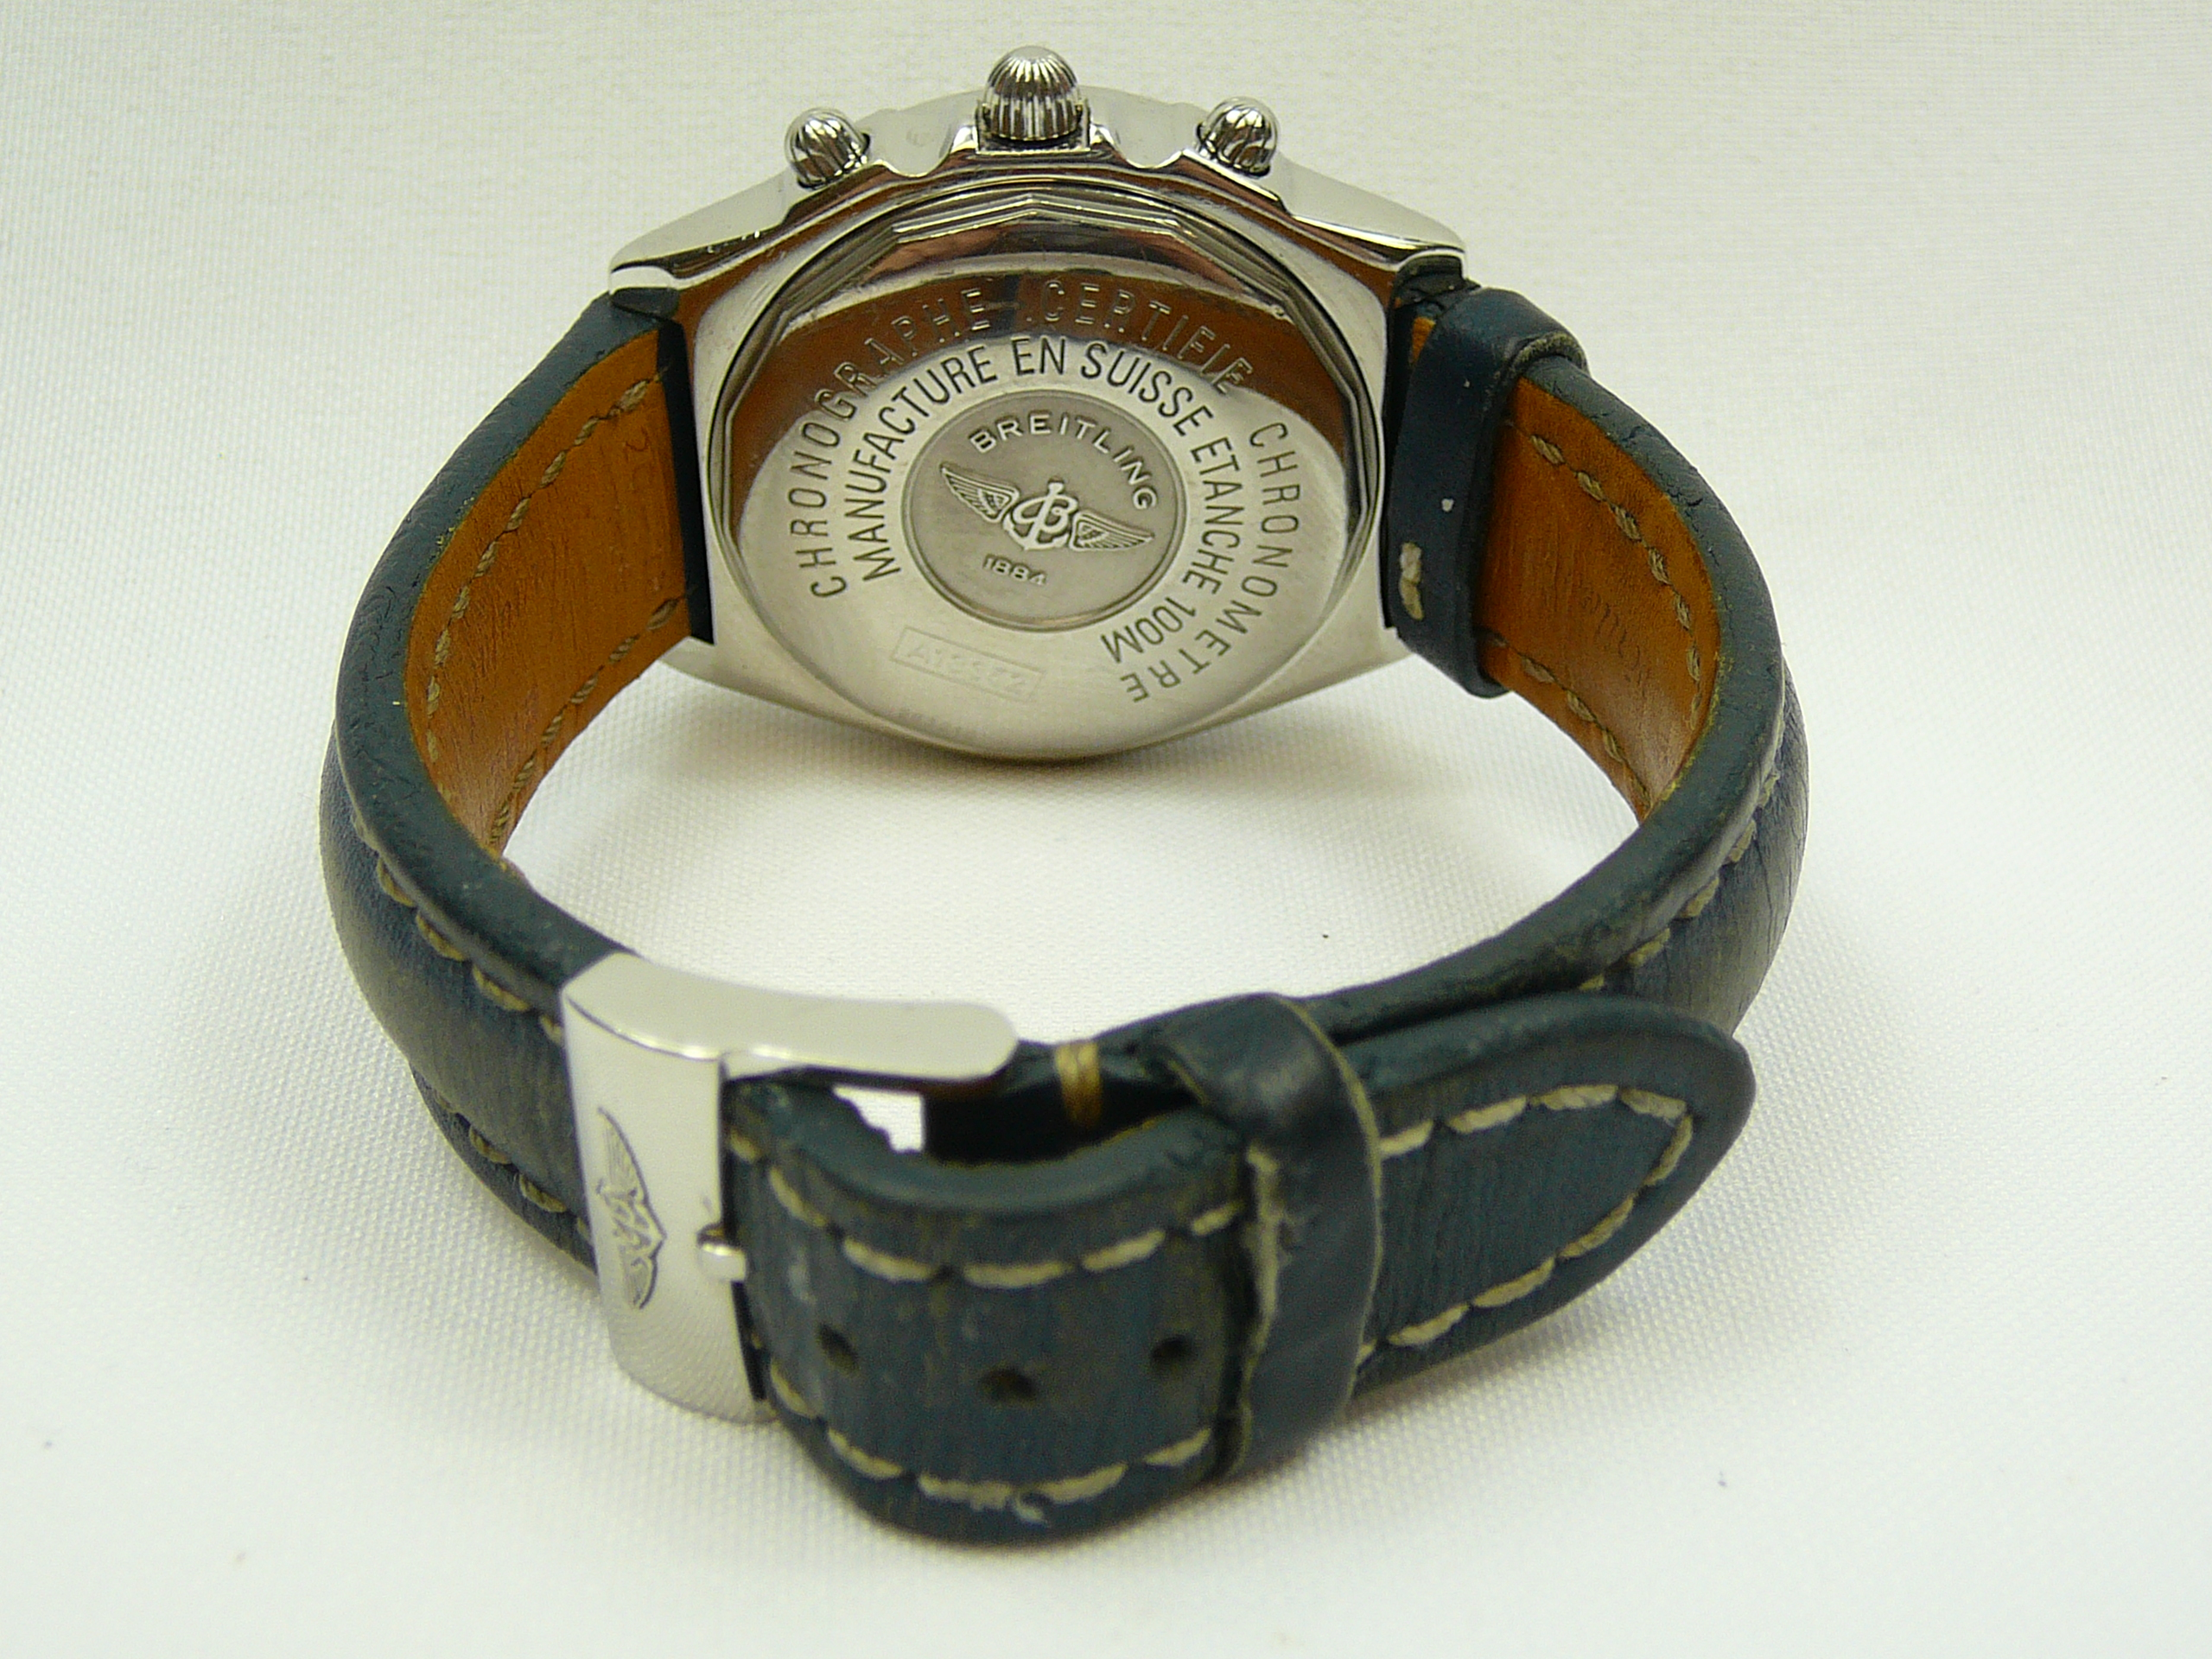 Gents Breitling Wrist Watch - Image 3 of 3